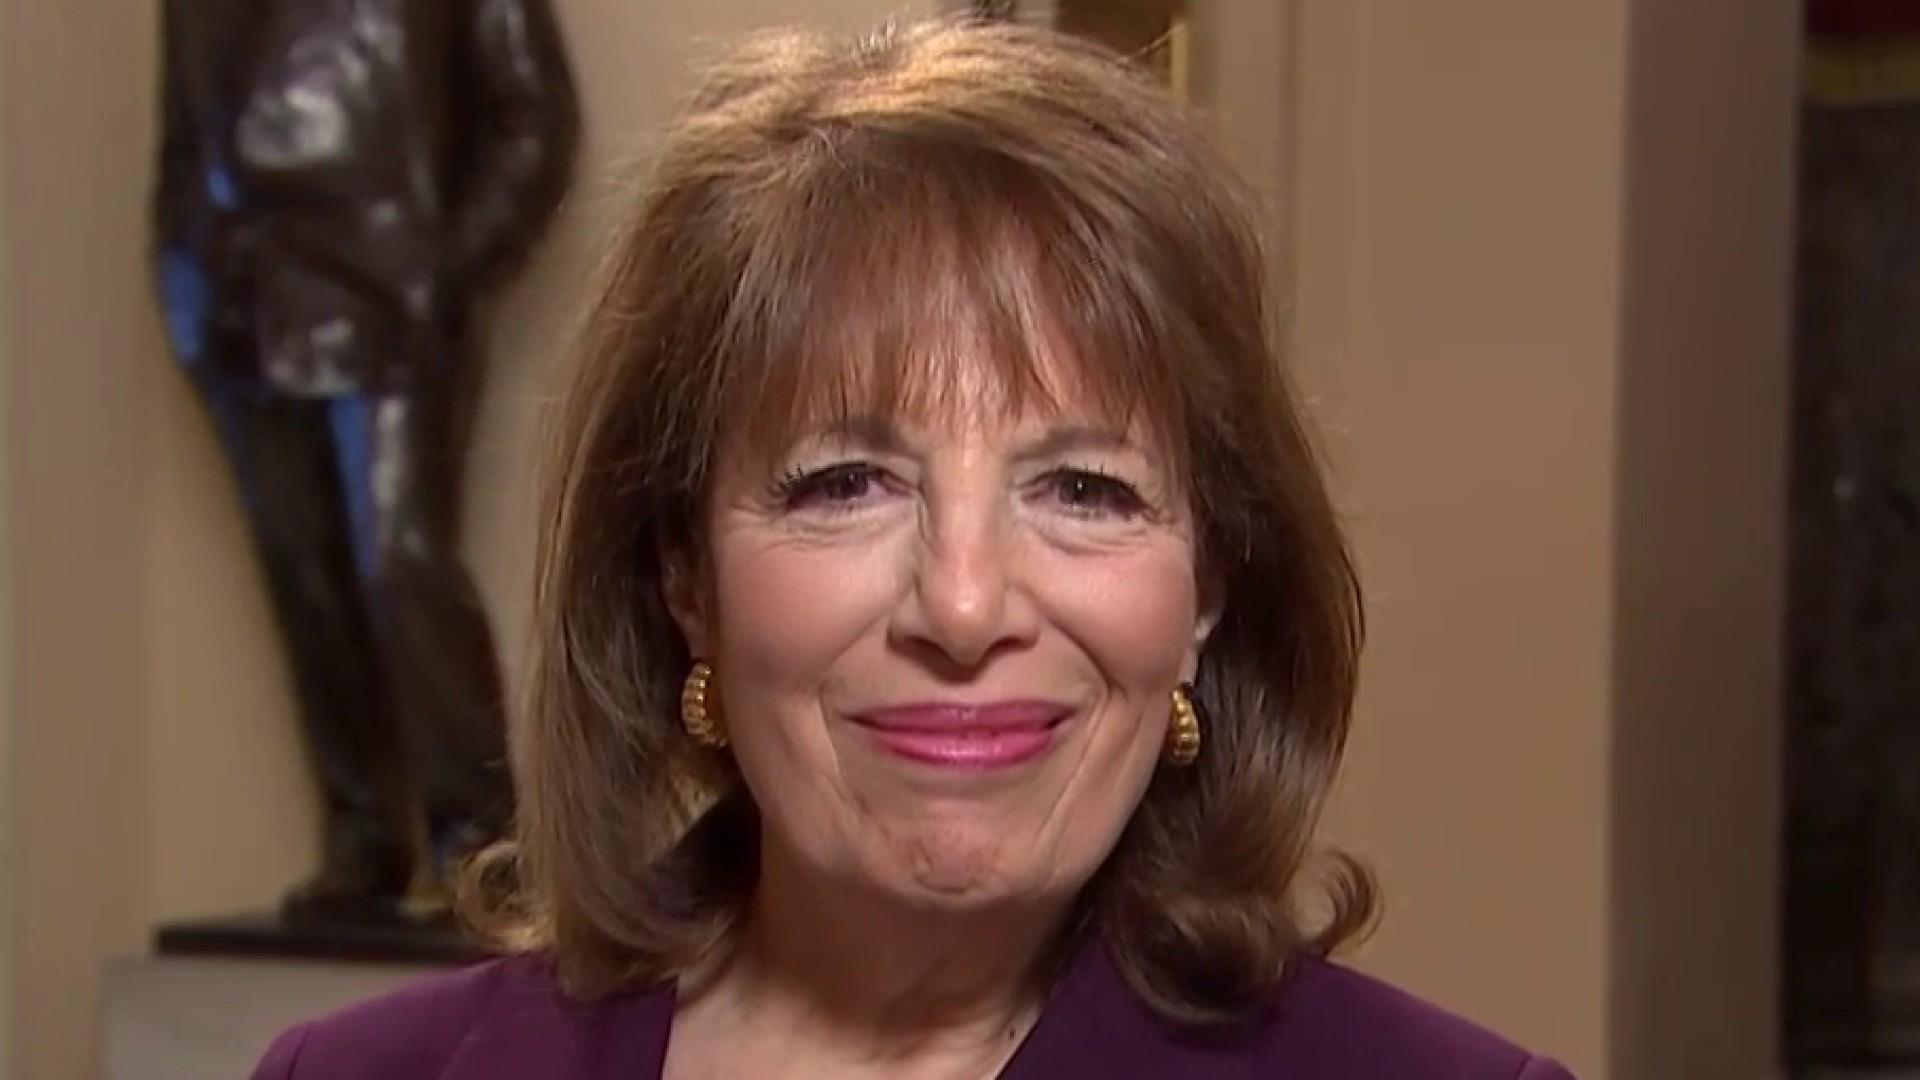 Rep. Speier: 'I'm unsure' if having Roger Stone testify before House Intel. would be worth it